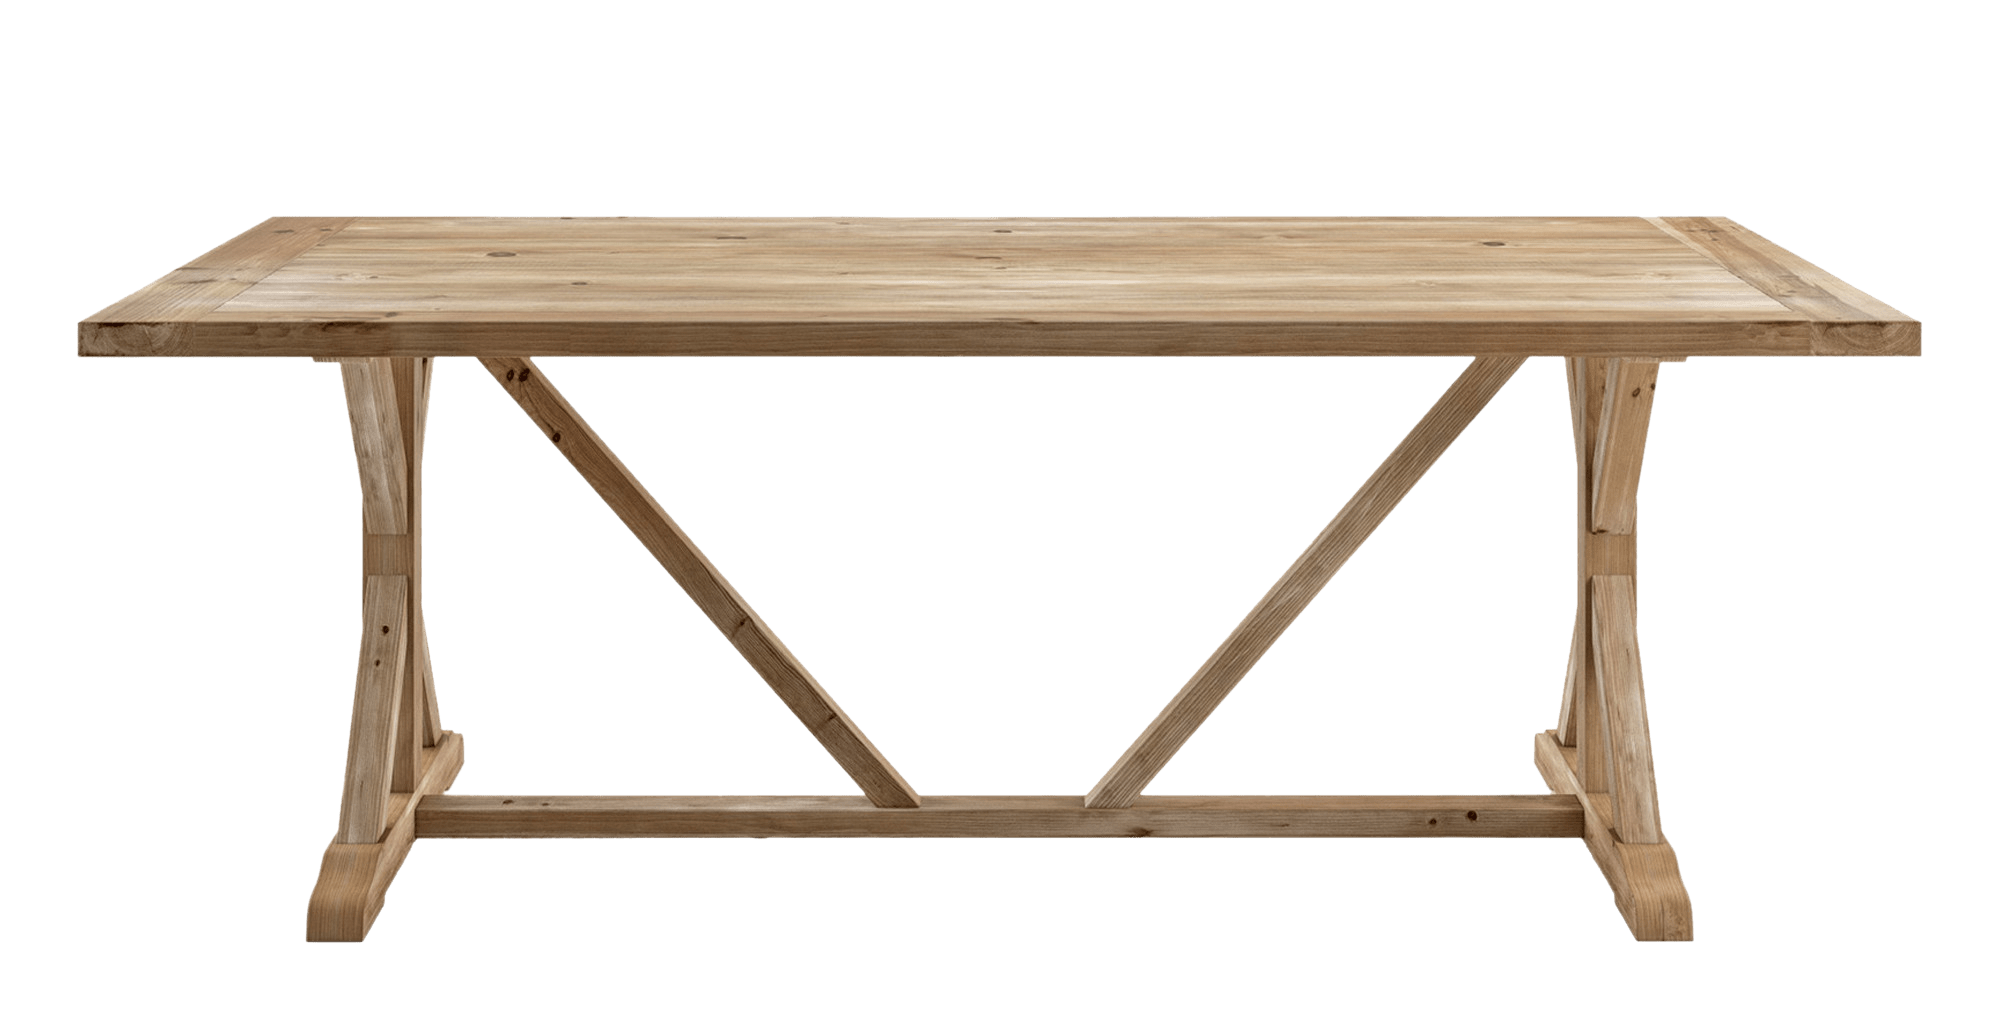 Download Trestle Table Free Clipart HD HQ PNG Image ...